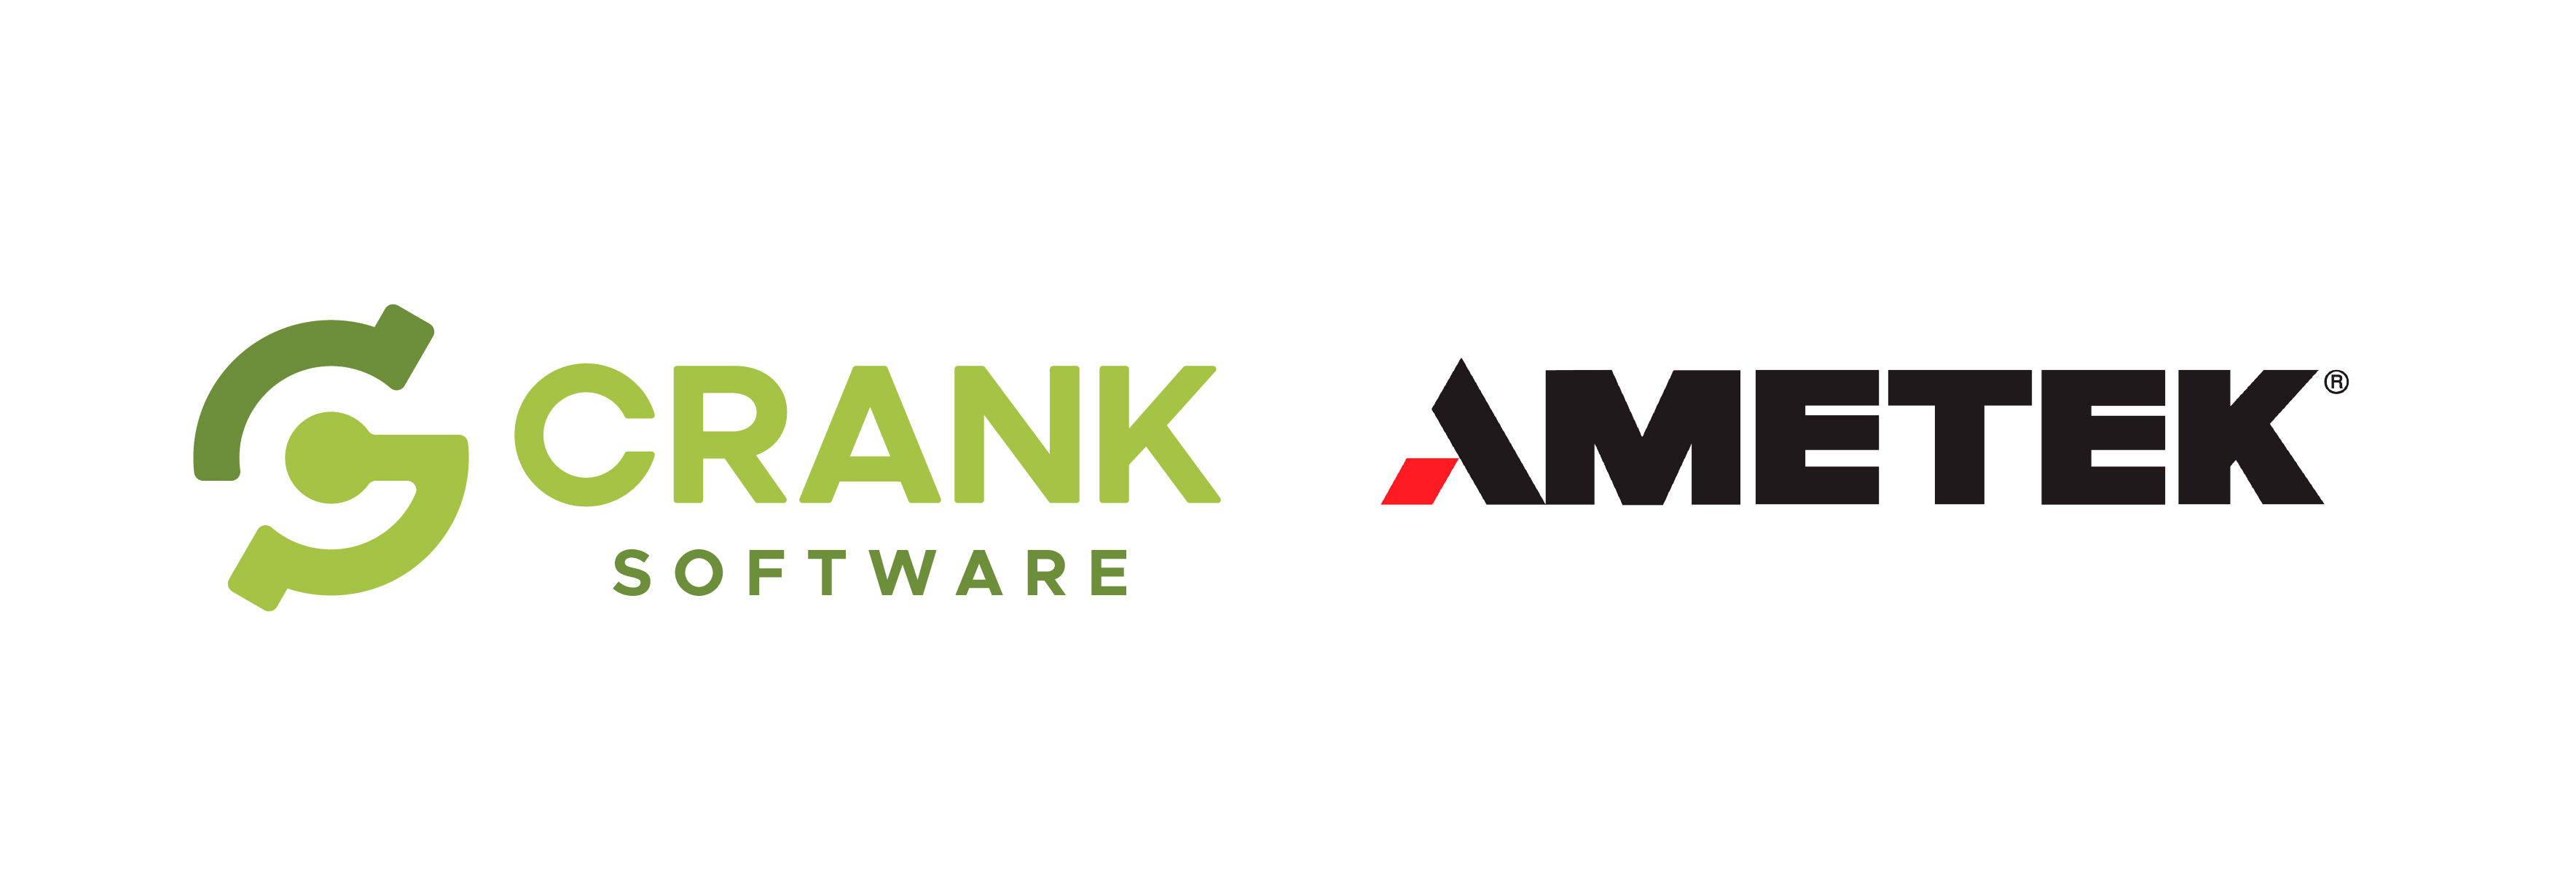 Crank-Software-Ametek-side-by-side-1